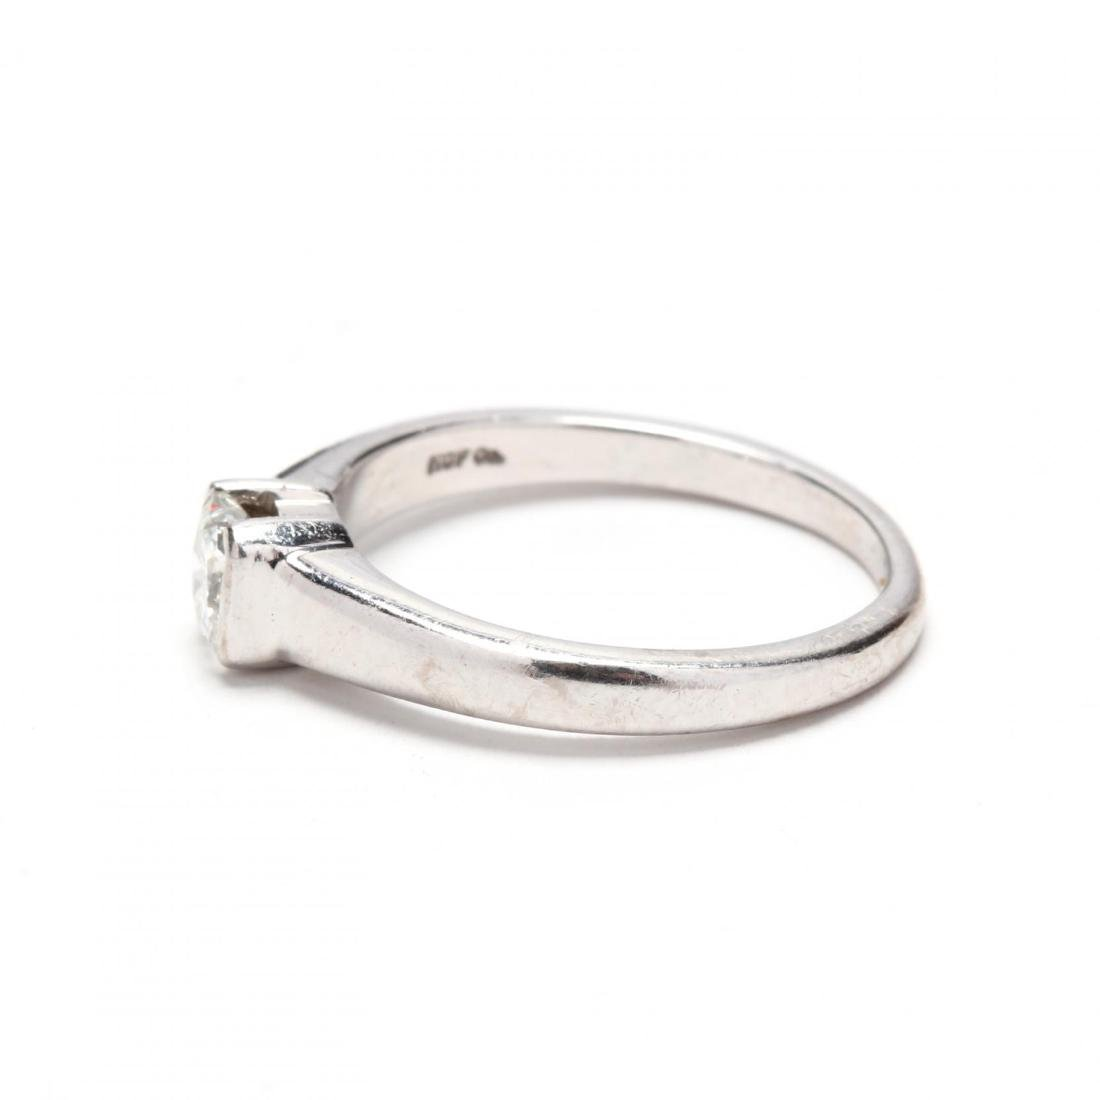 18KT White Gold Diamond Ring - 4